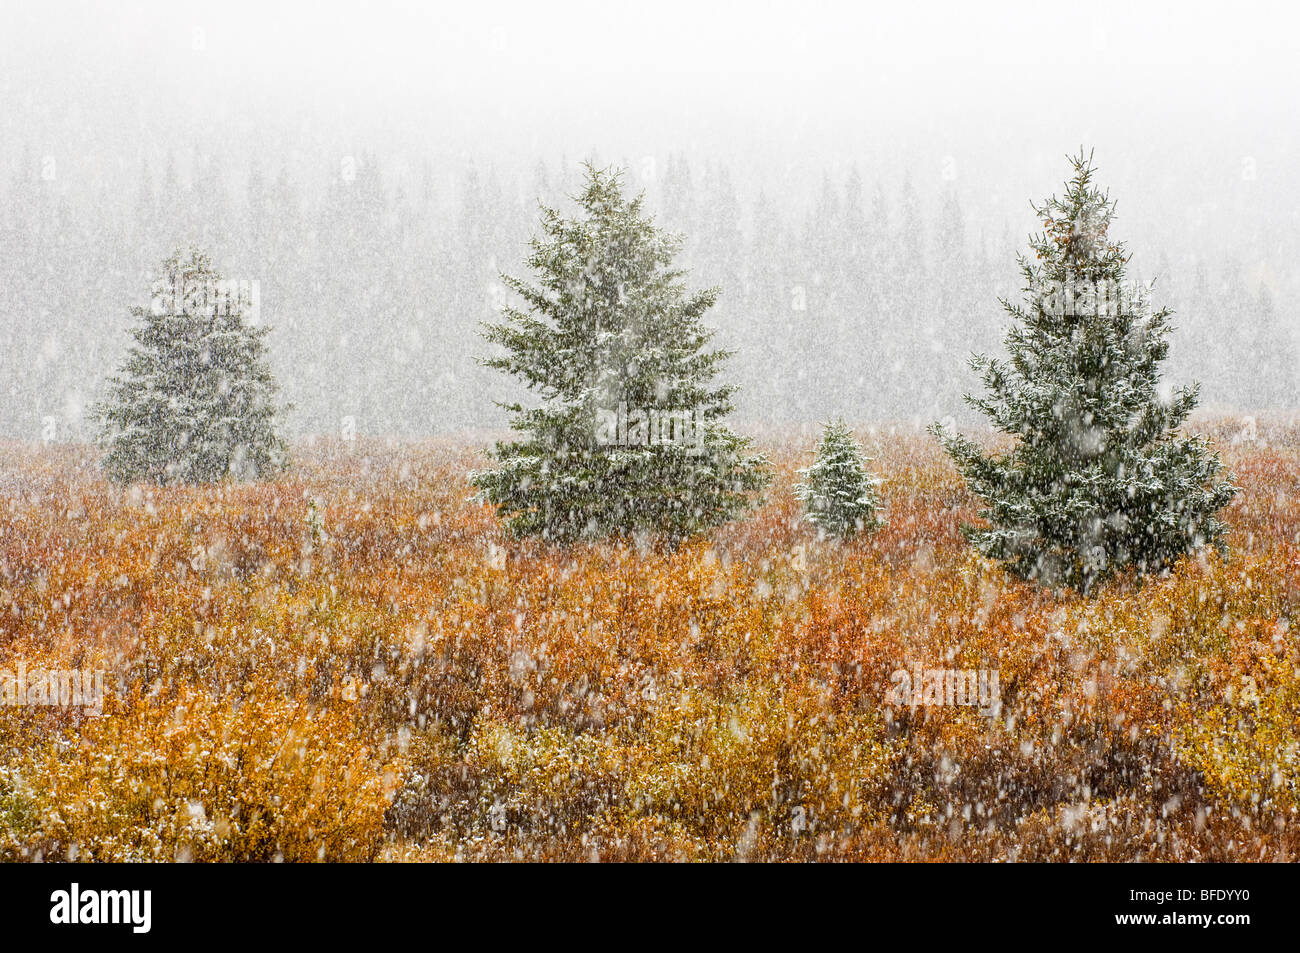 Snowfall on meadow in autumn colors, Banff National Park, Alberta, Canada - Stock Image